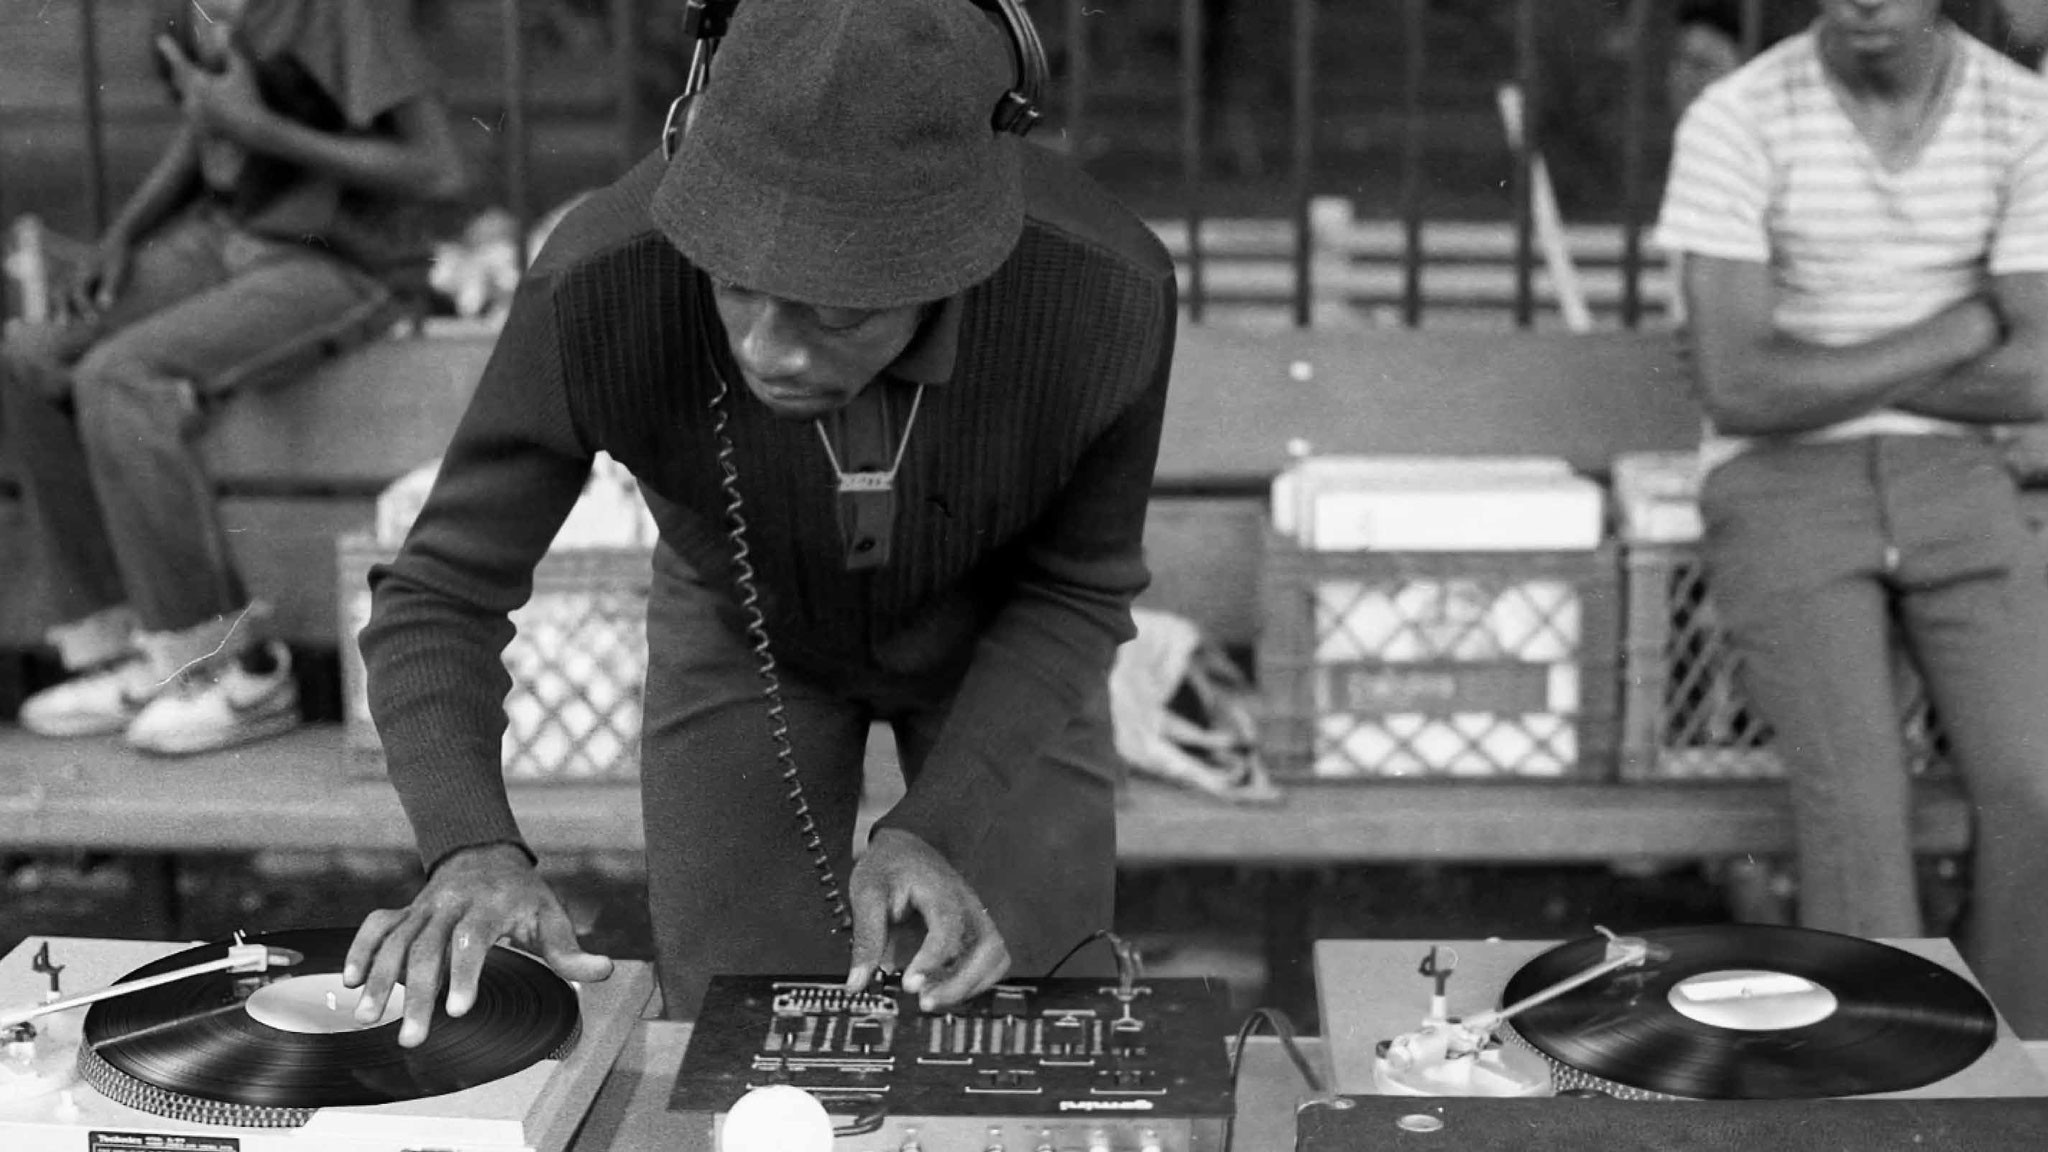 DJ working at a turntable